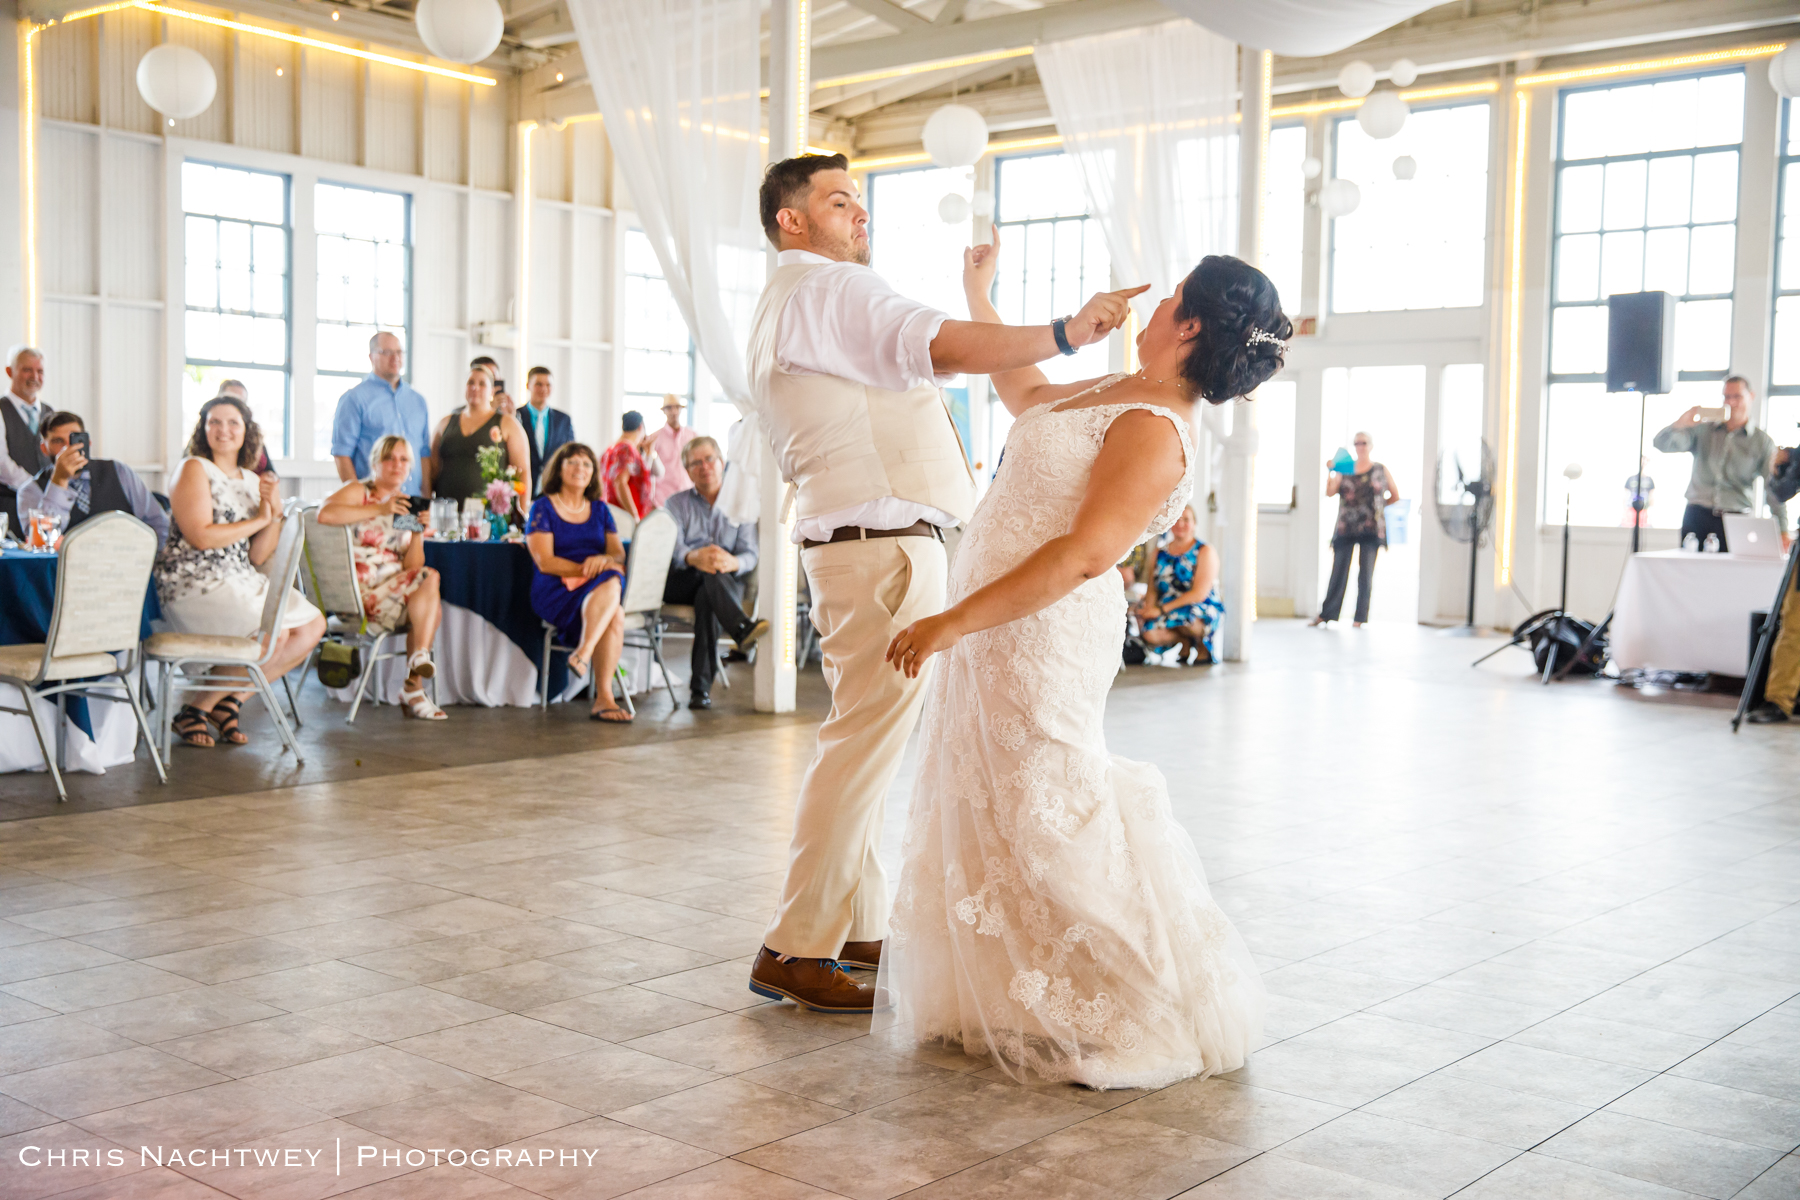 photos-wedding-lighthouse-point-park-carousel-new-haven-chris-nachtwey-photography-2019-49.jpg